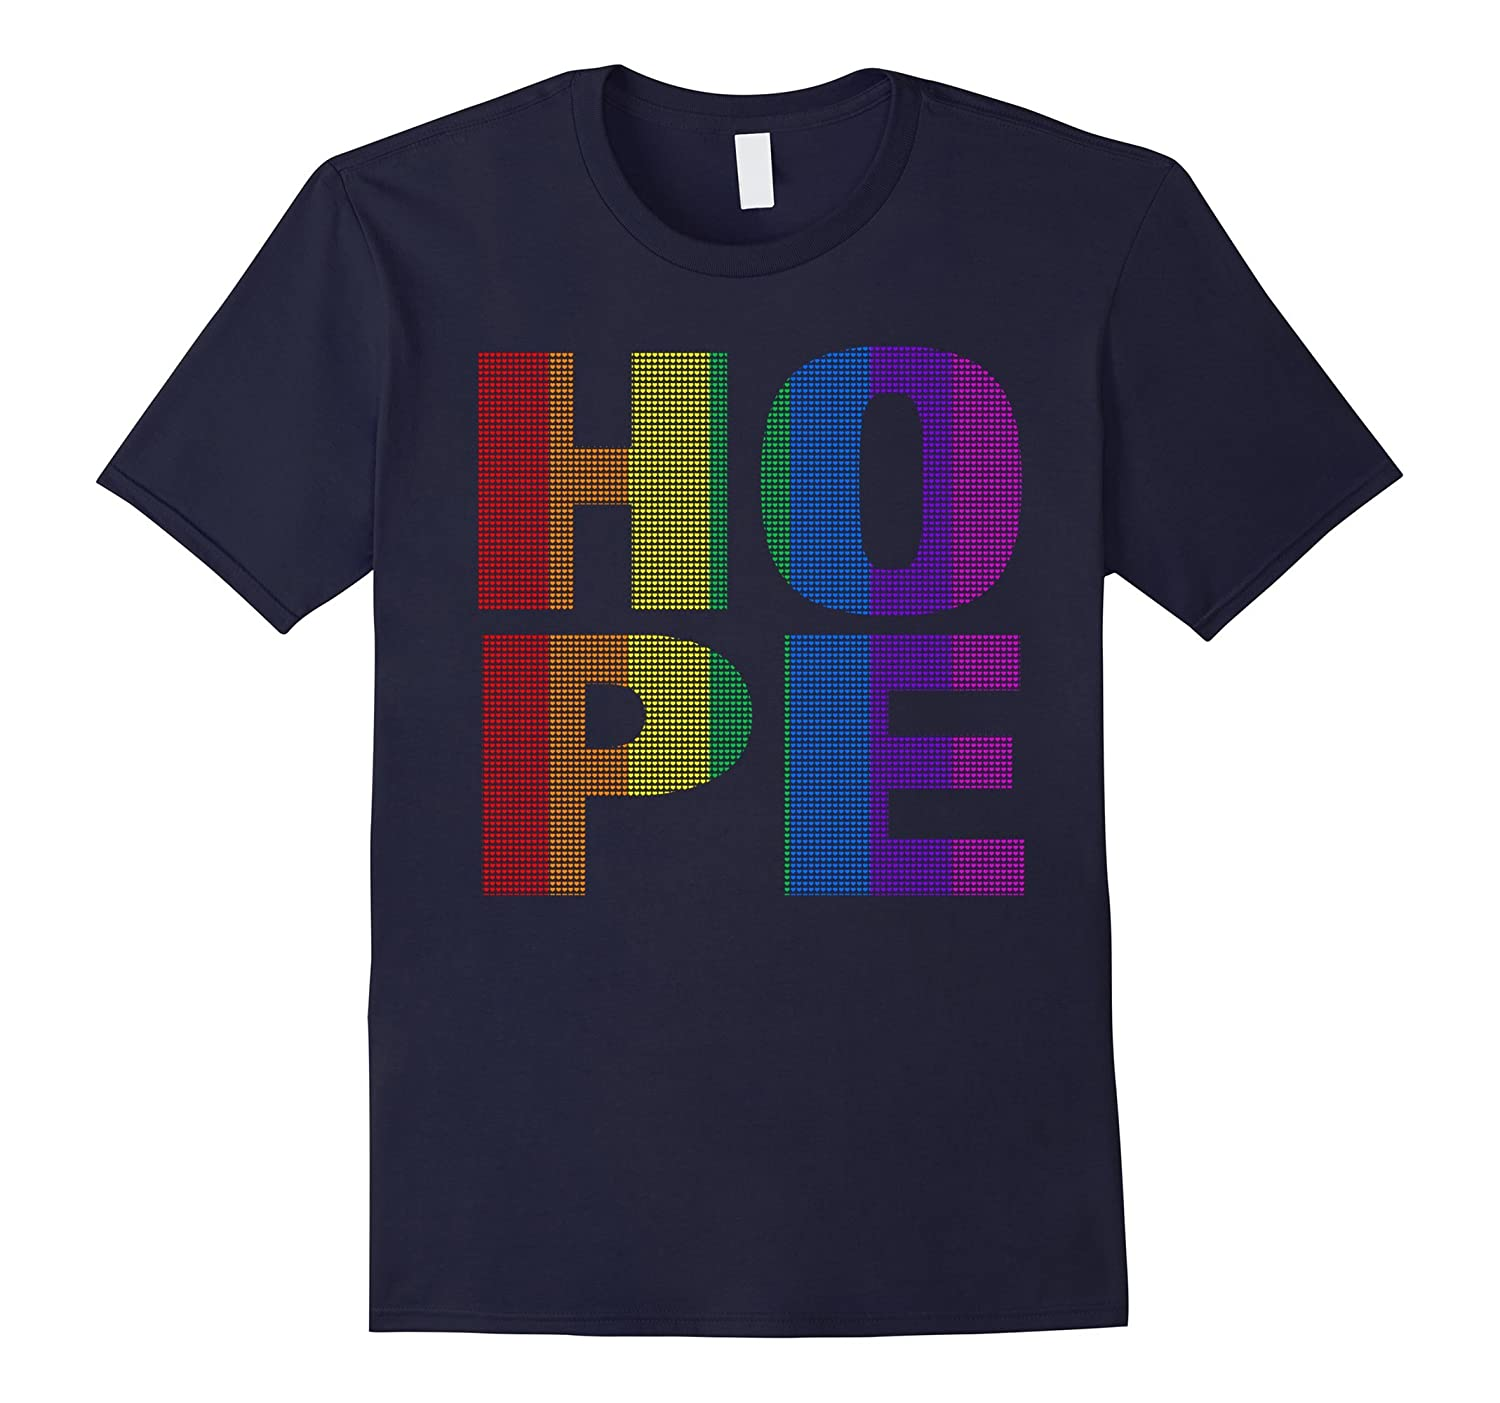 Awesome inspirational design LGBT Pride Month Gift Tee Shirt-BN